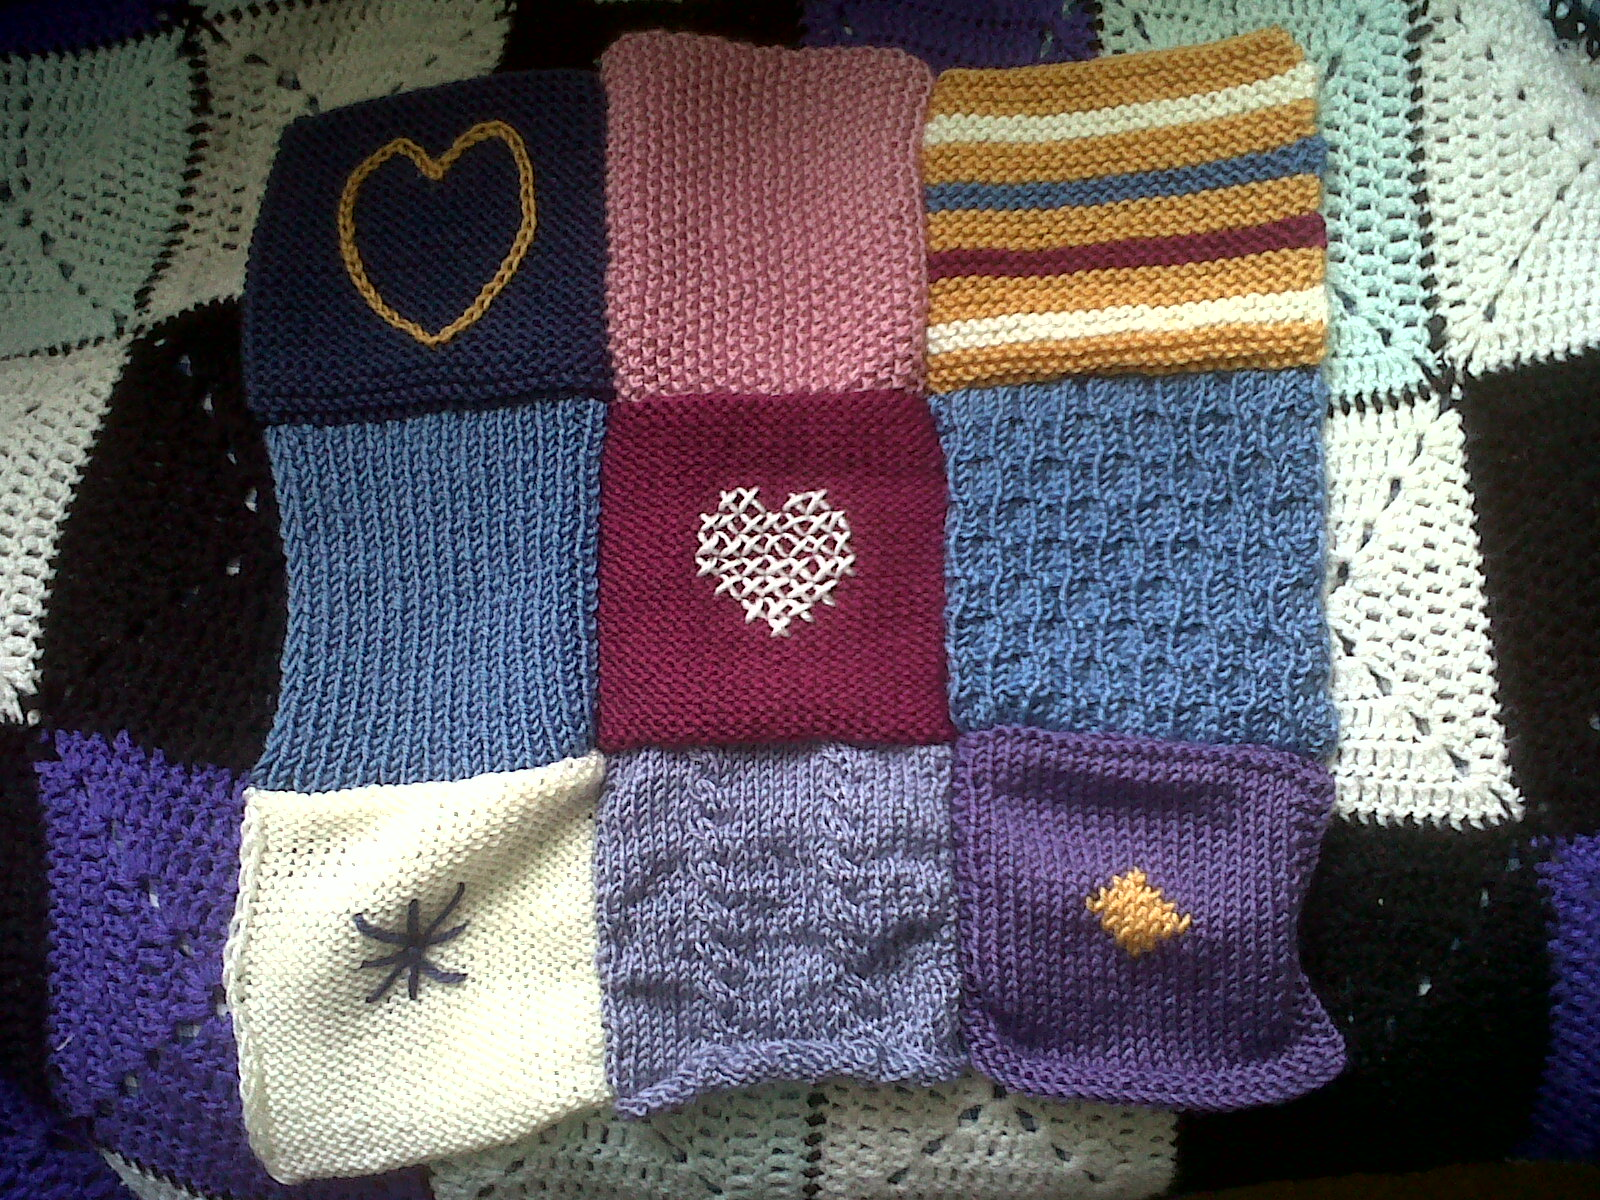 Beckys Crafting Blog: A Knitted Blanket